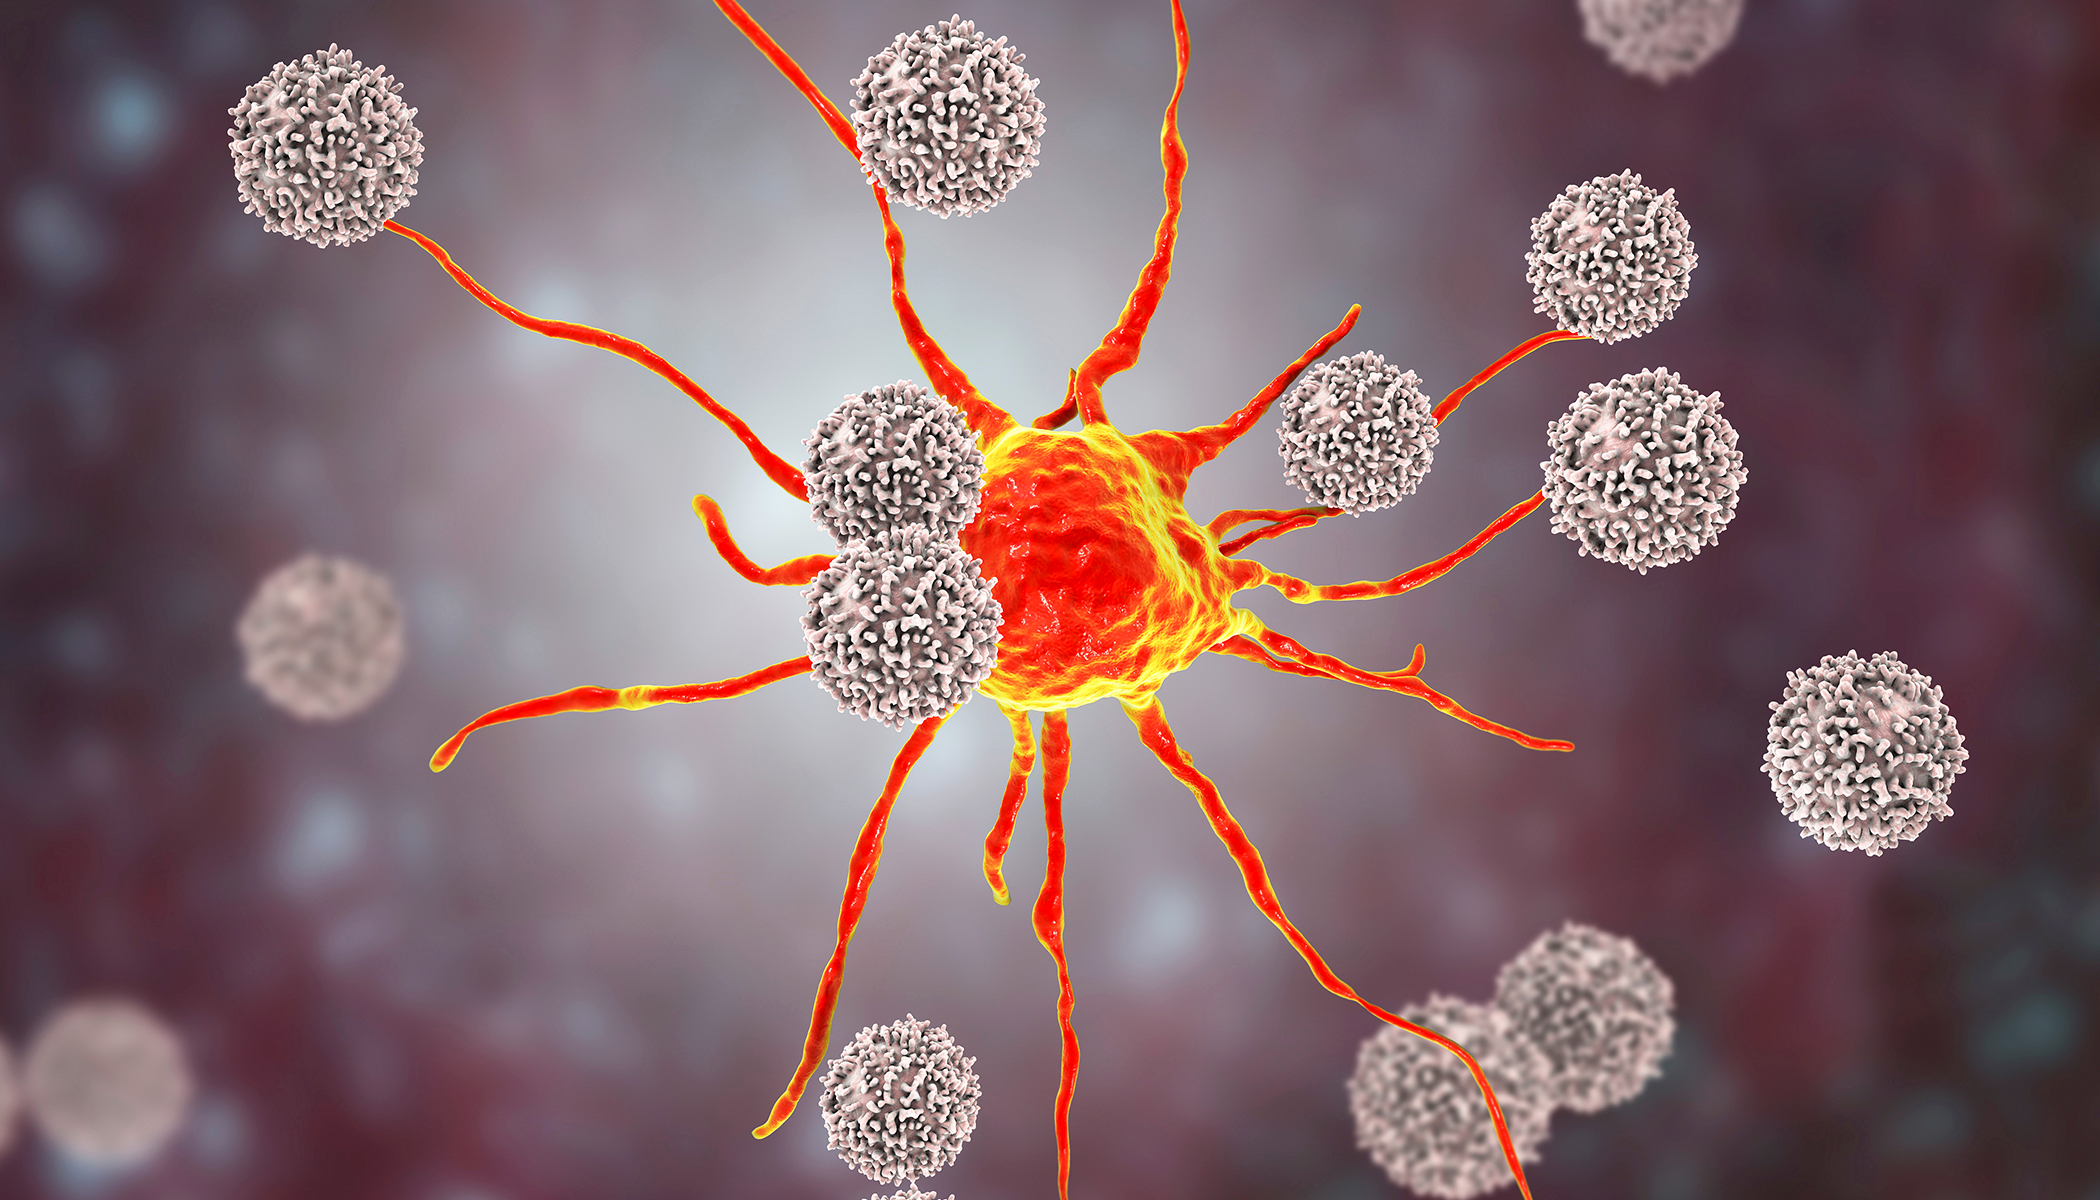 Scientists Find New Method That Causes Cancer Cells to Self-destruct